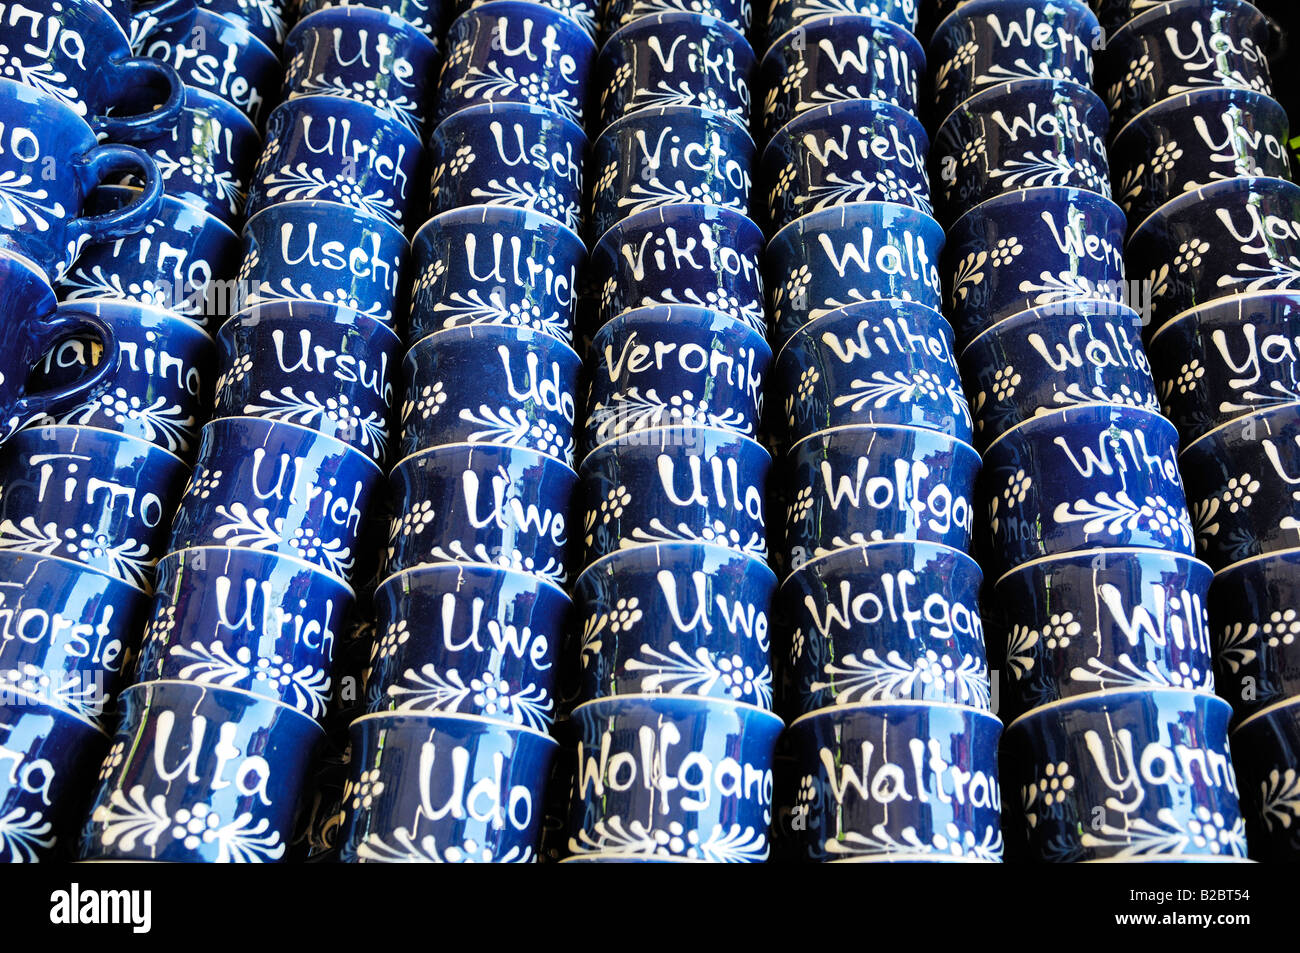 Names written on cups, Auer Dult, traditional market in Munich, Bavaria, Germany, Europe Stock Photo